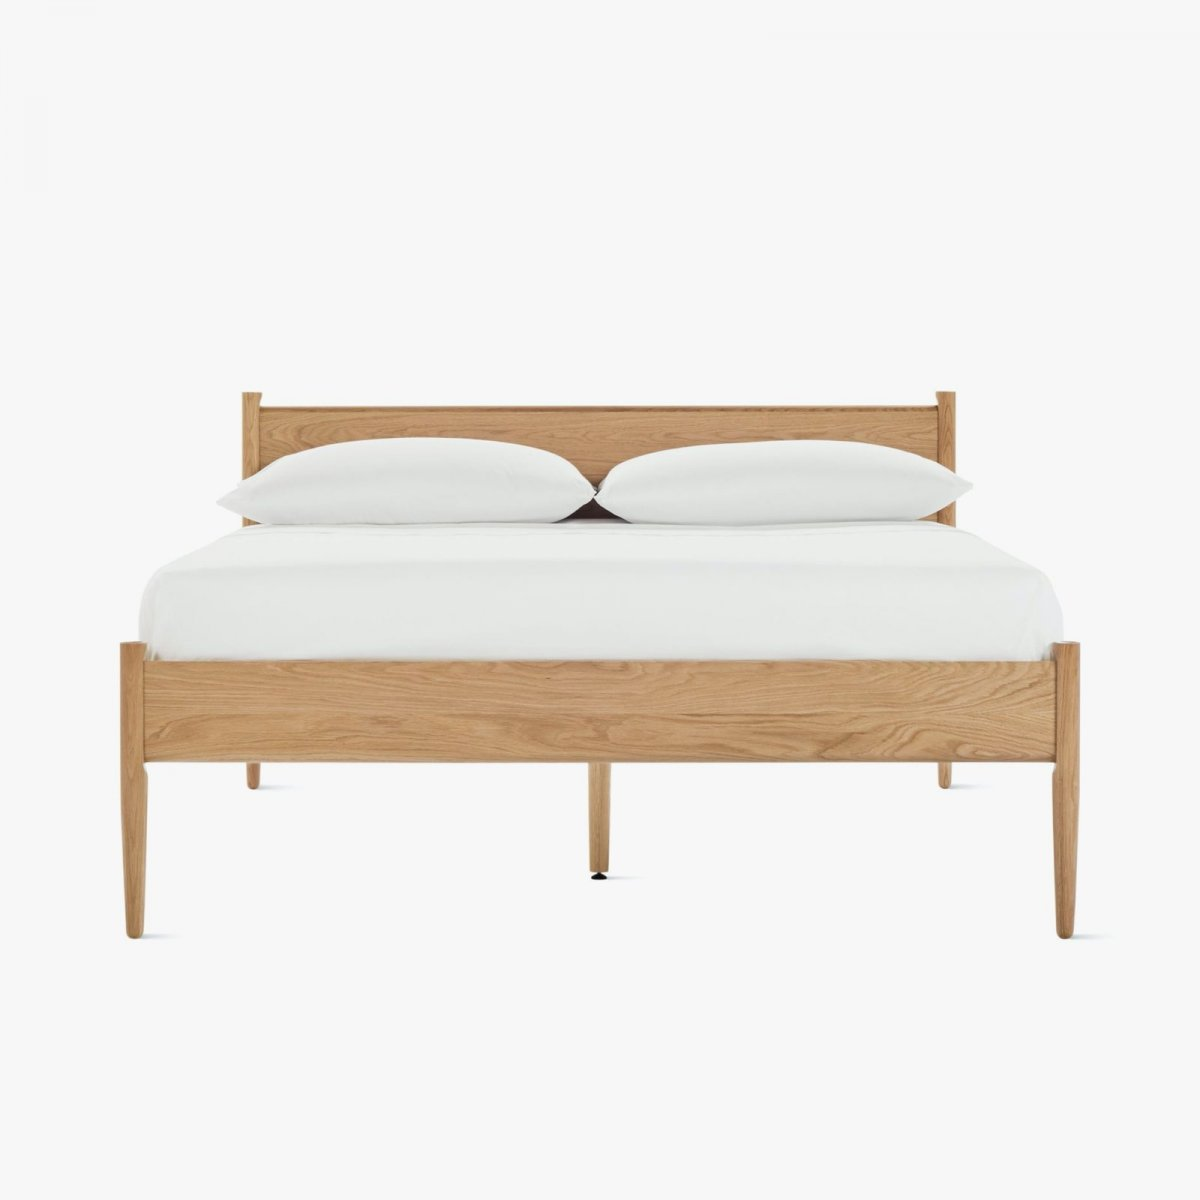 Cove Bed, oak, front view.